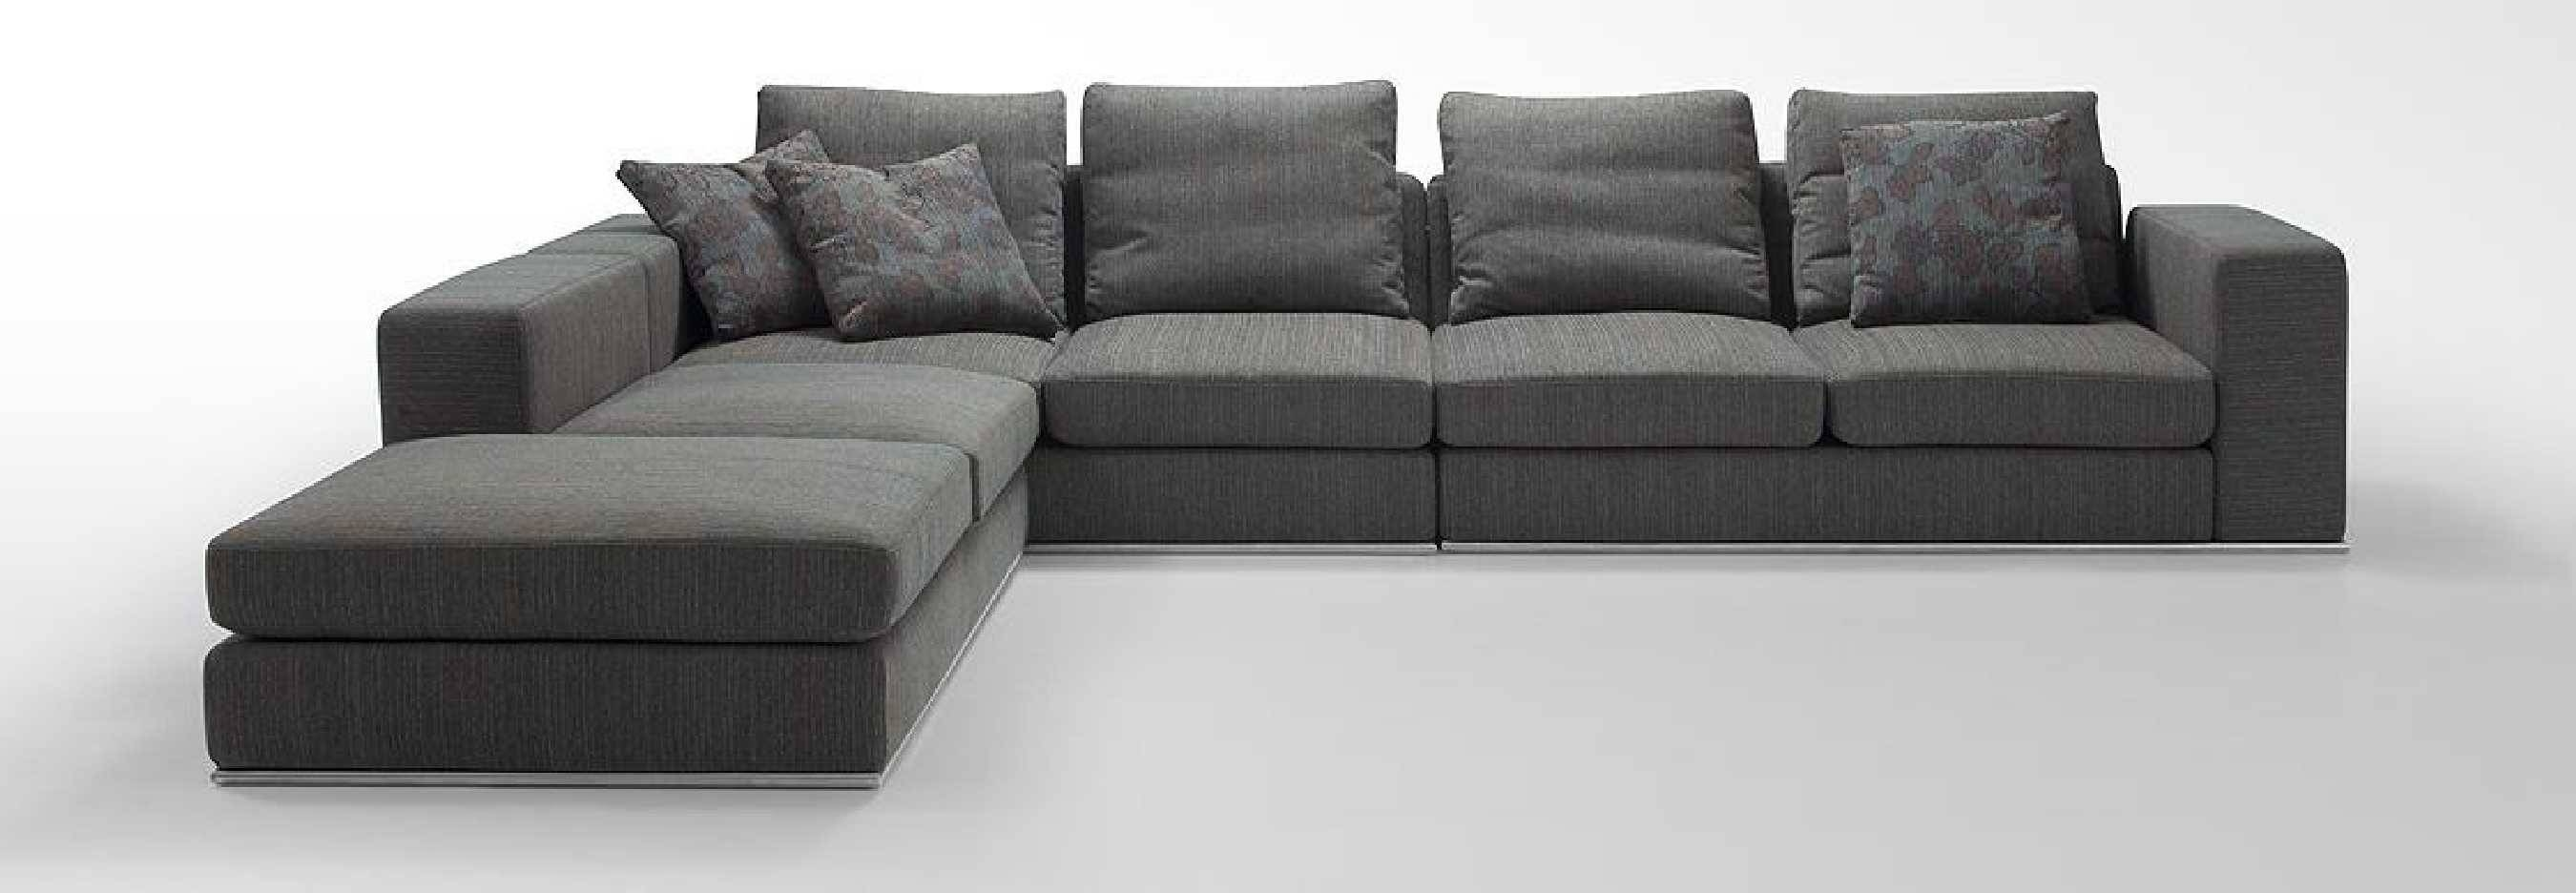 l shape sofa bed